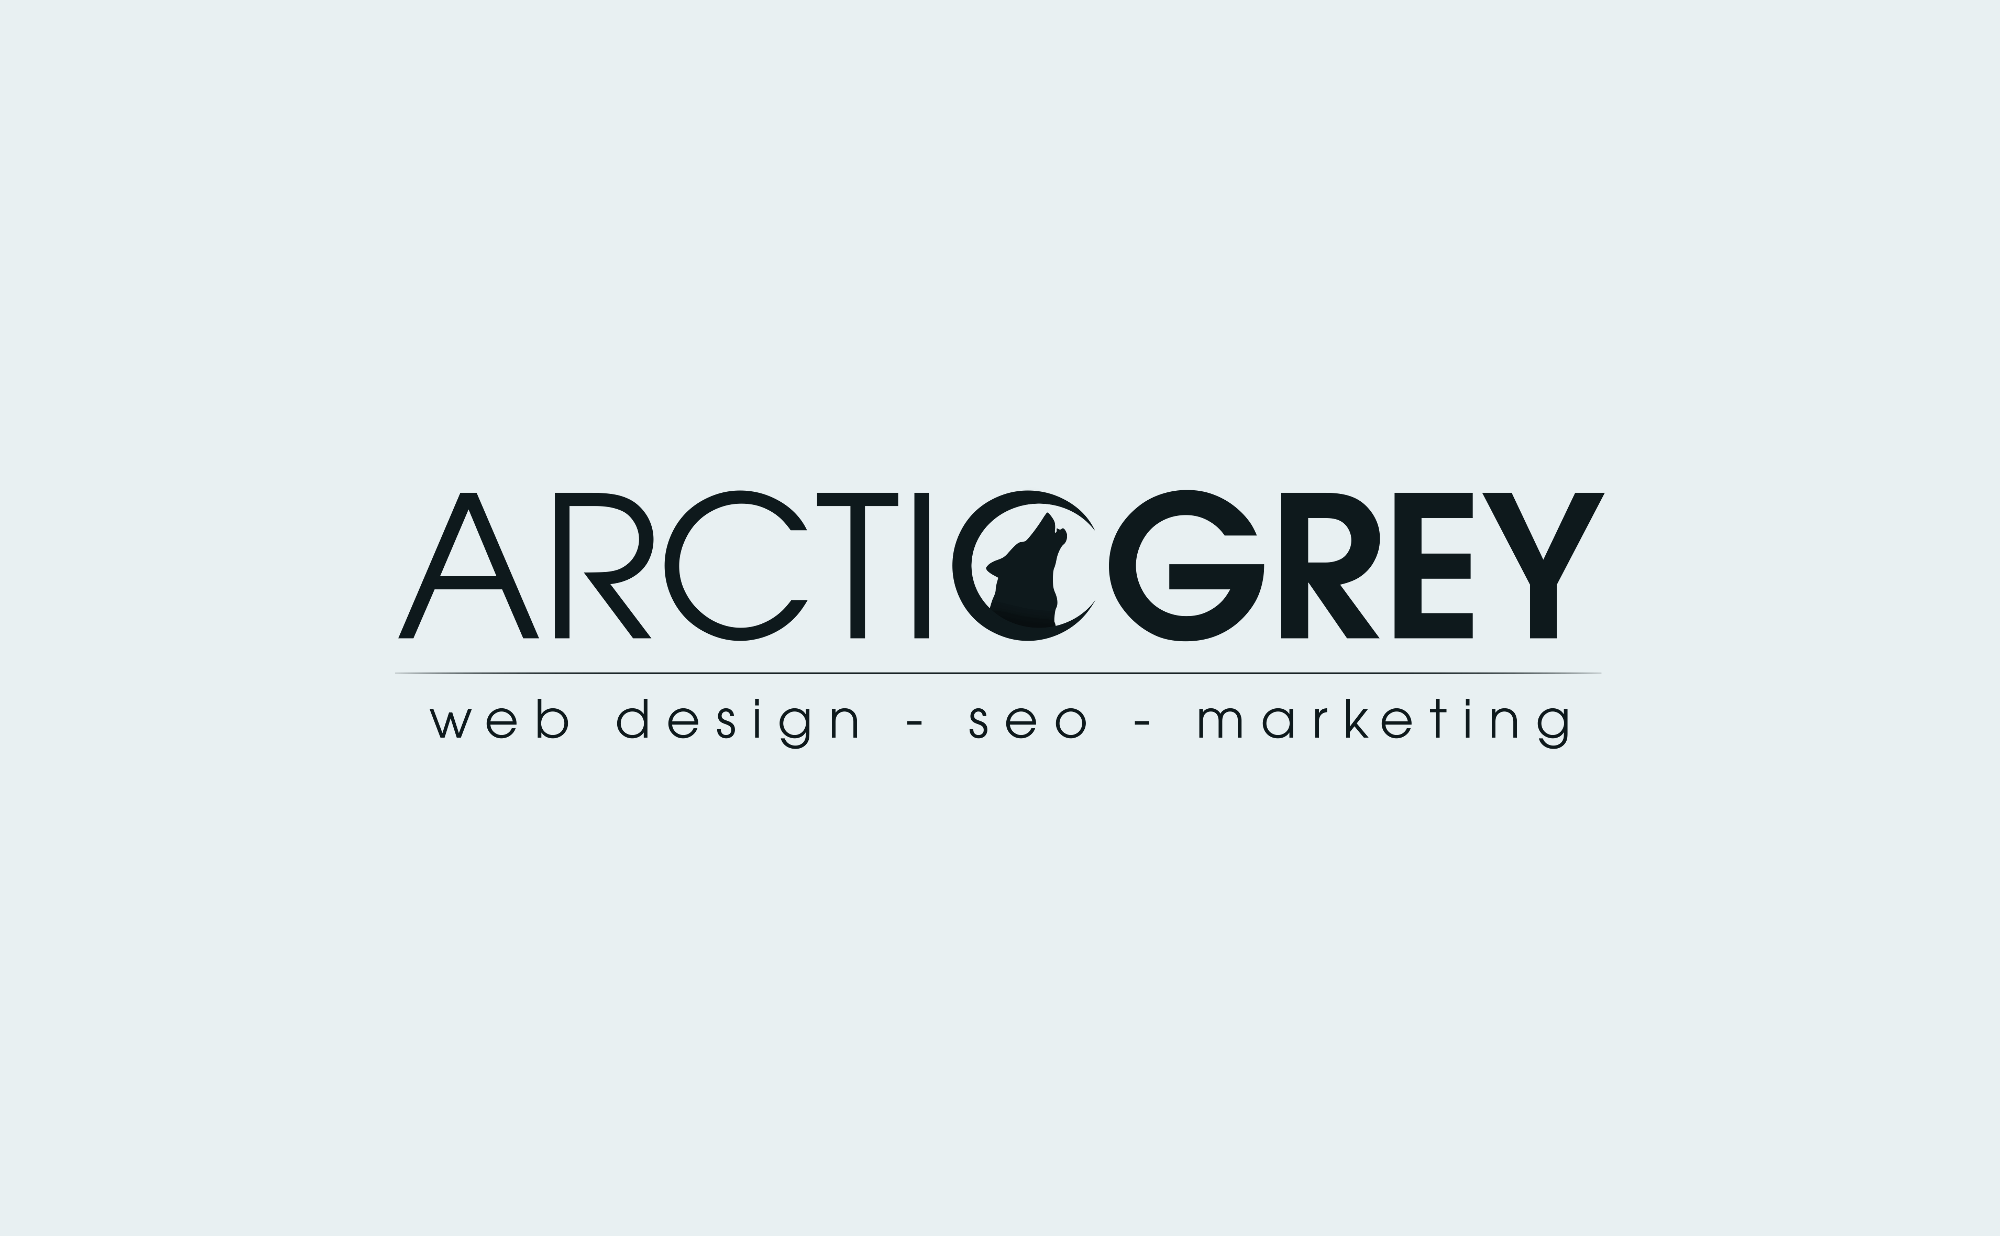 Best SEO Website Design Firm Logo: Arctic Grey Inc